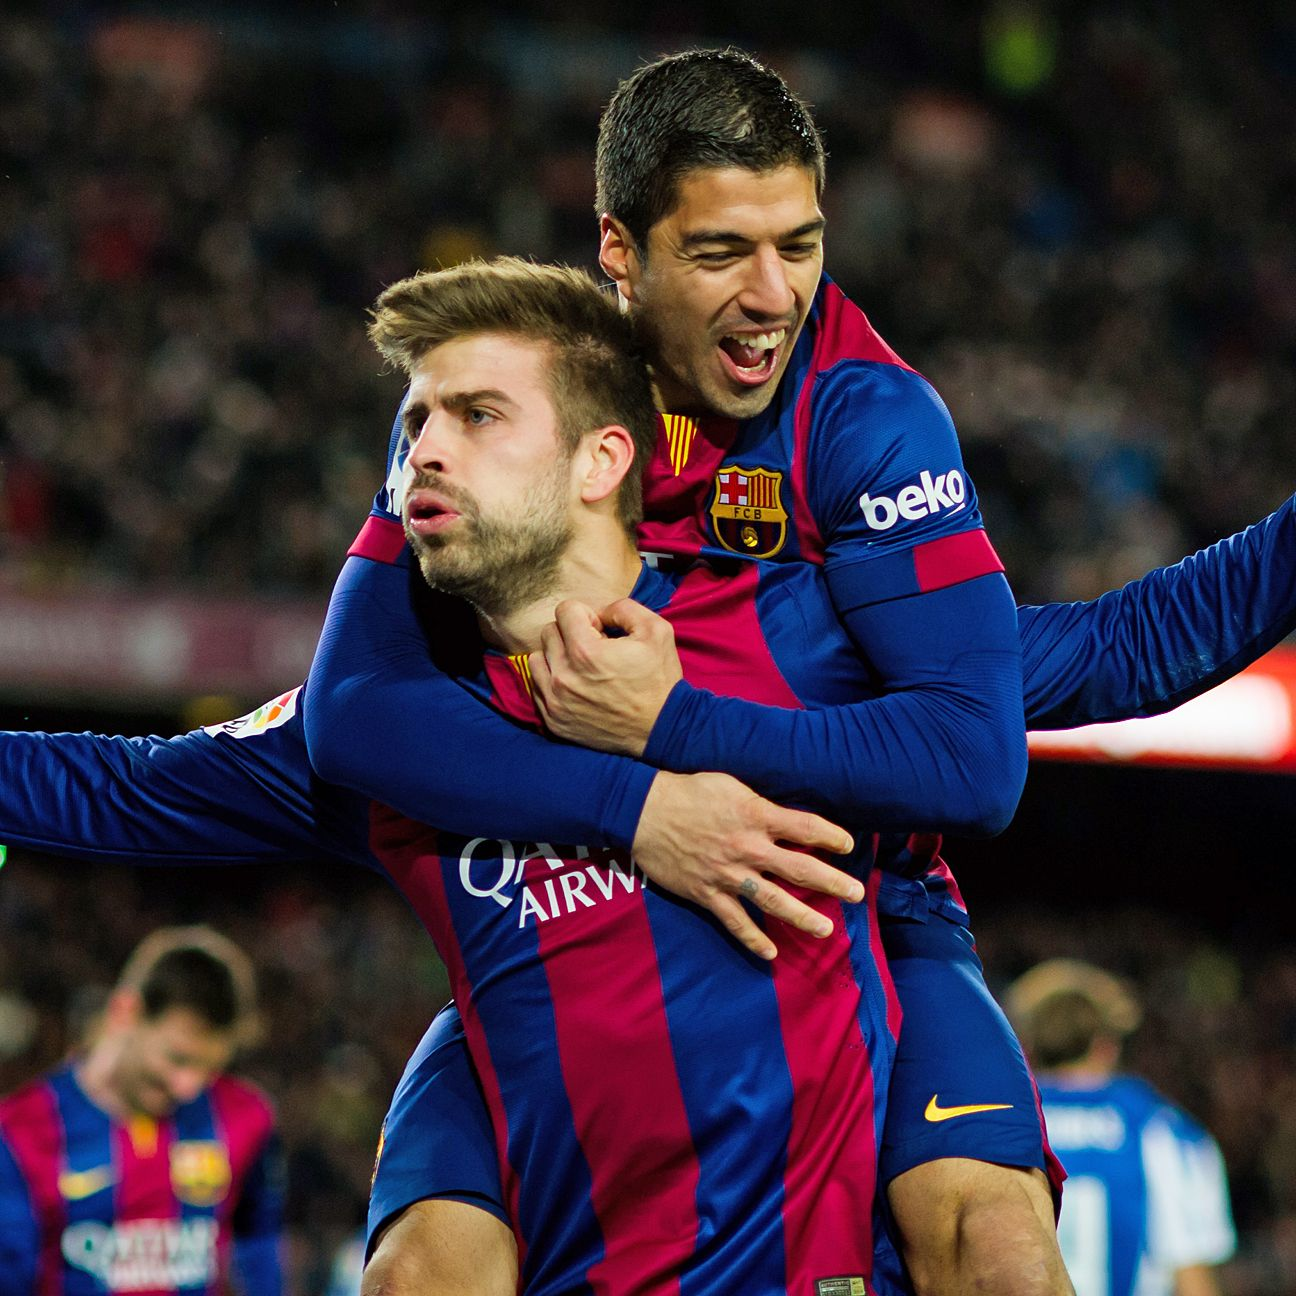 Gerard Pique's second-half header all but sealed the three points for Barcelona against Espanyol.